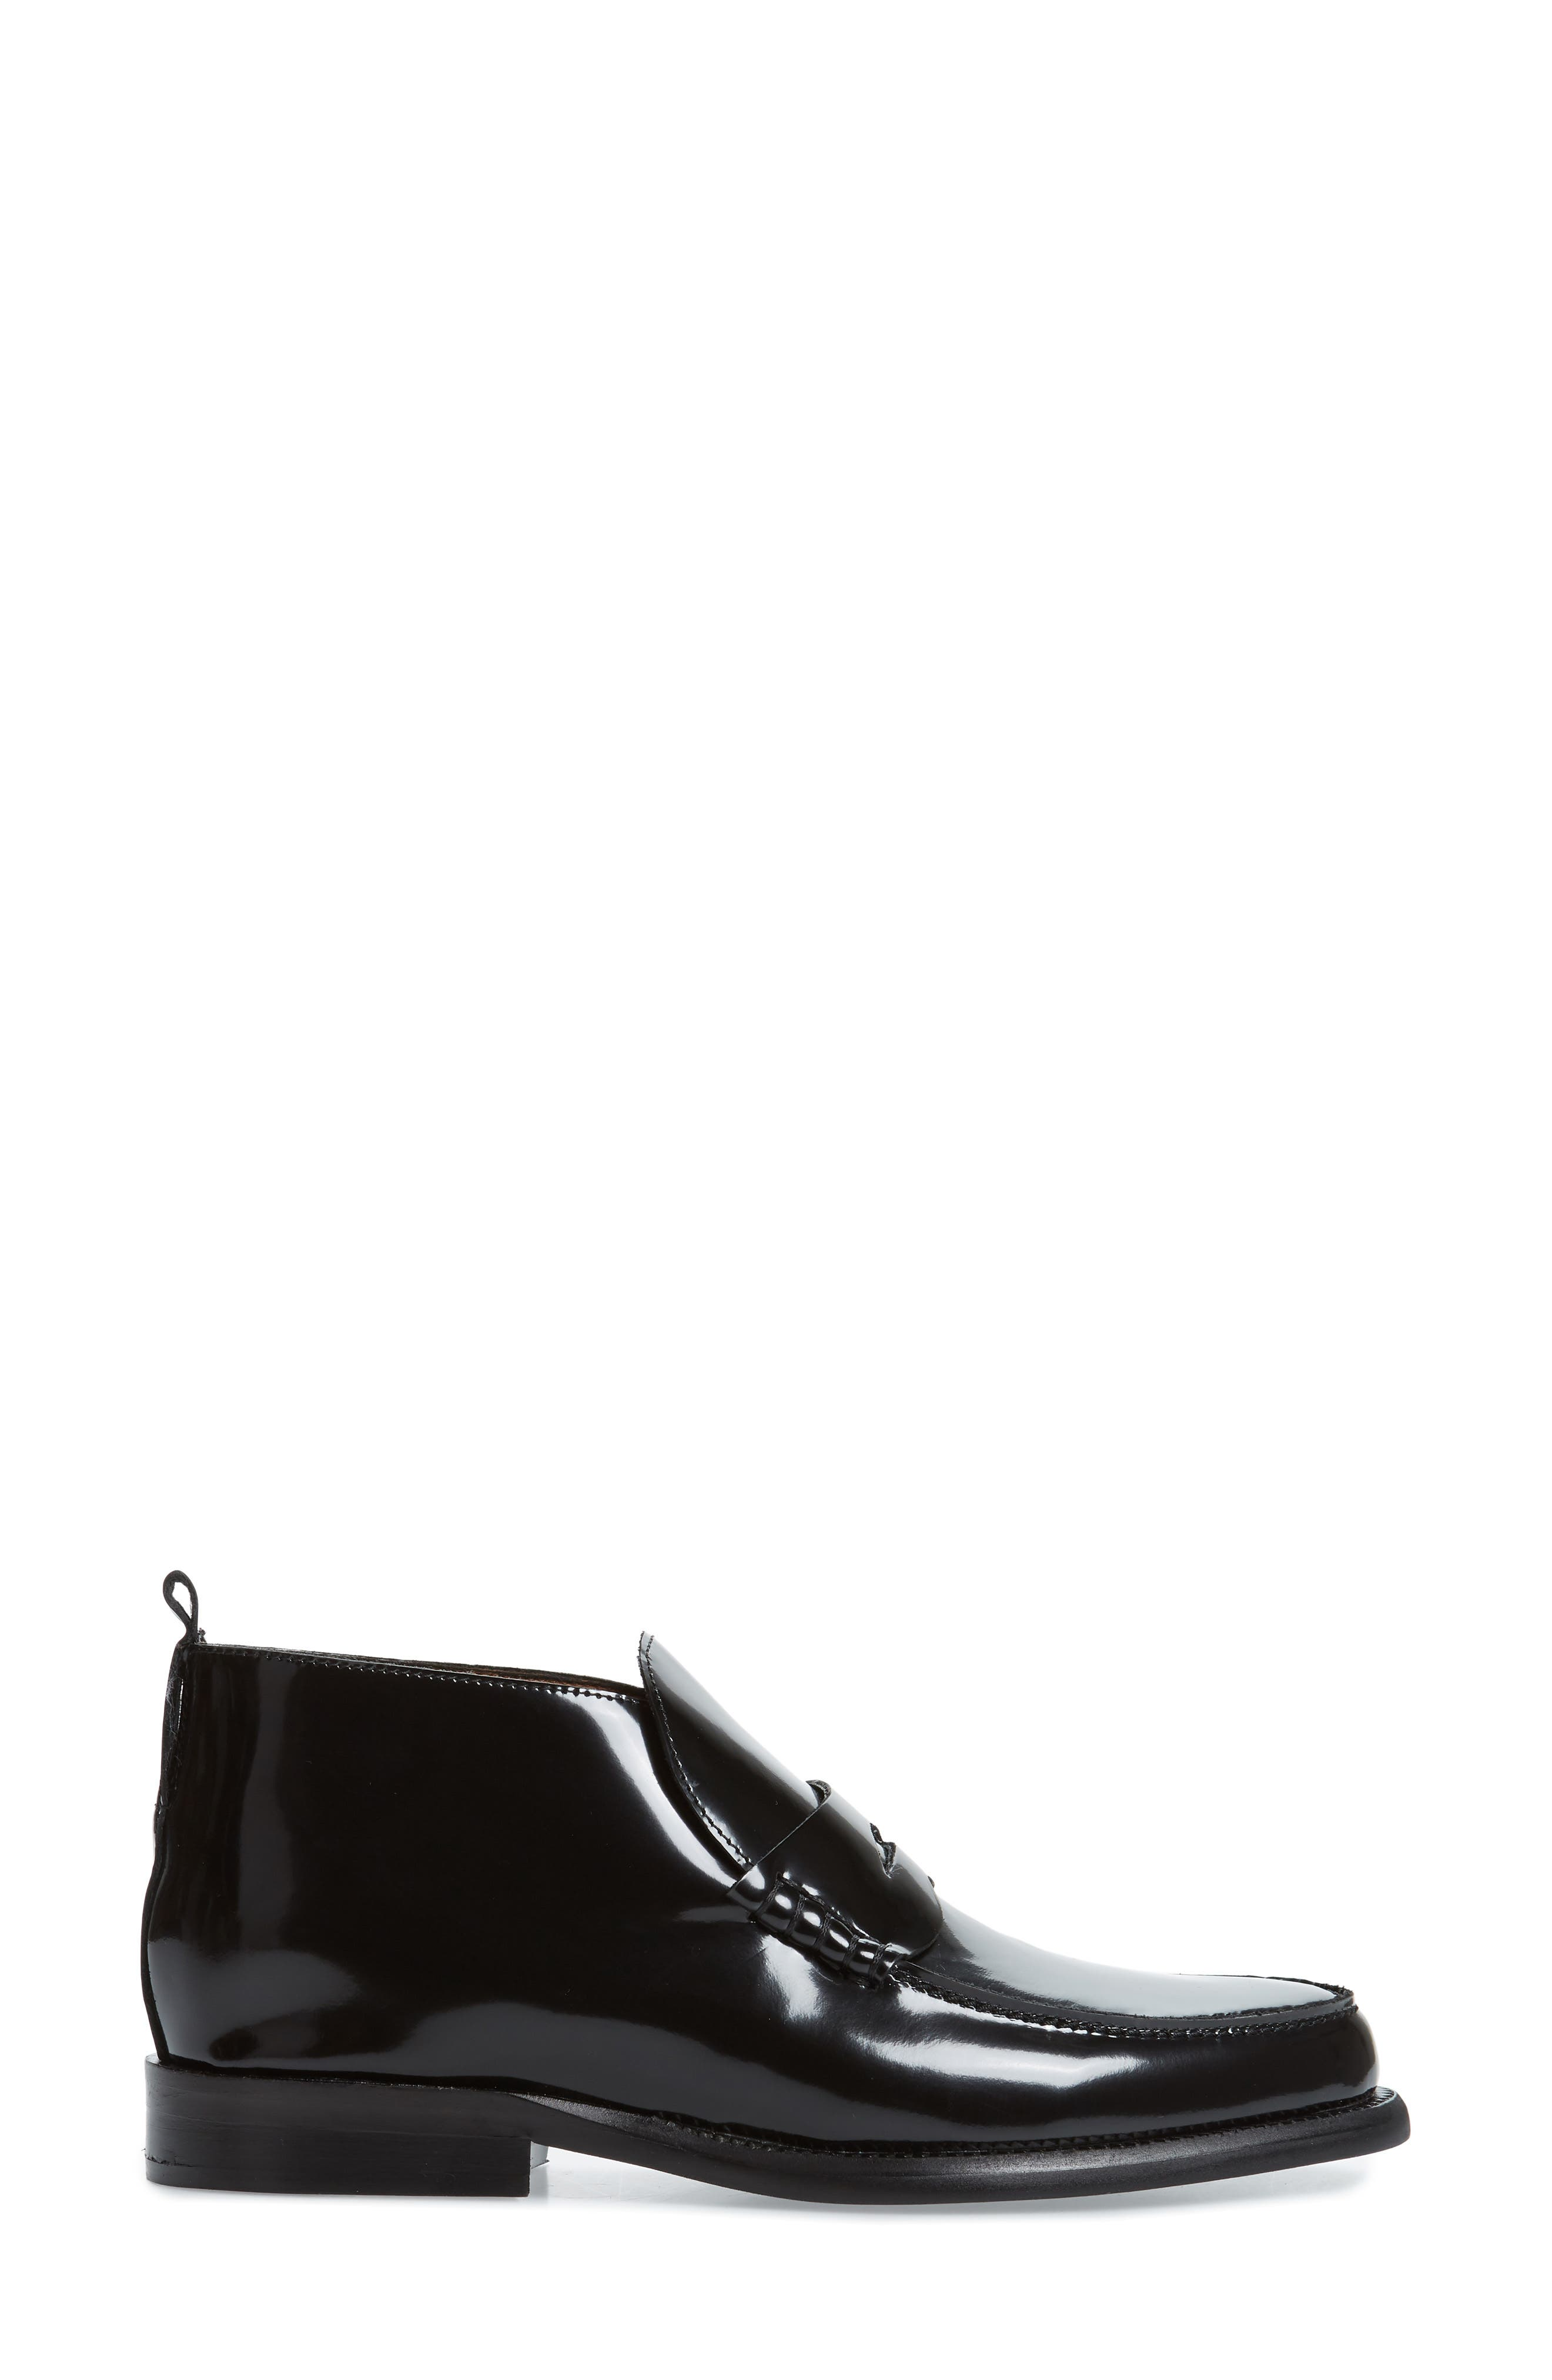 JEFFREY CAMPBELL, Marquis Loafer, Alternate thumbnail 3, color, BLACK LEATHER